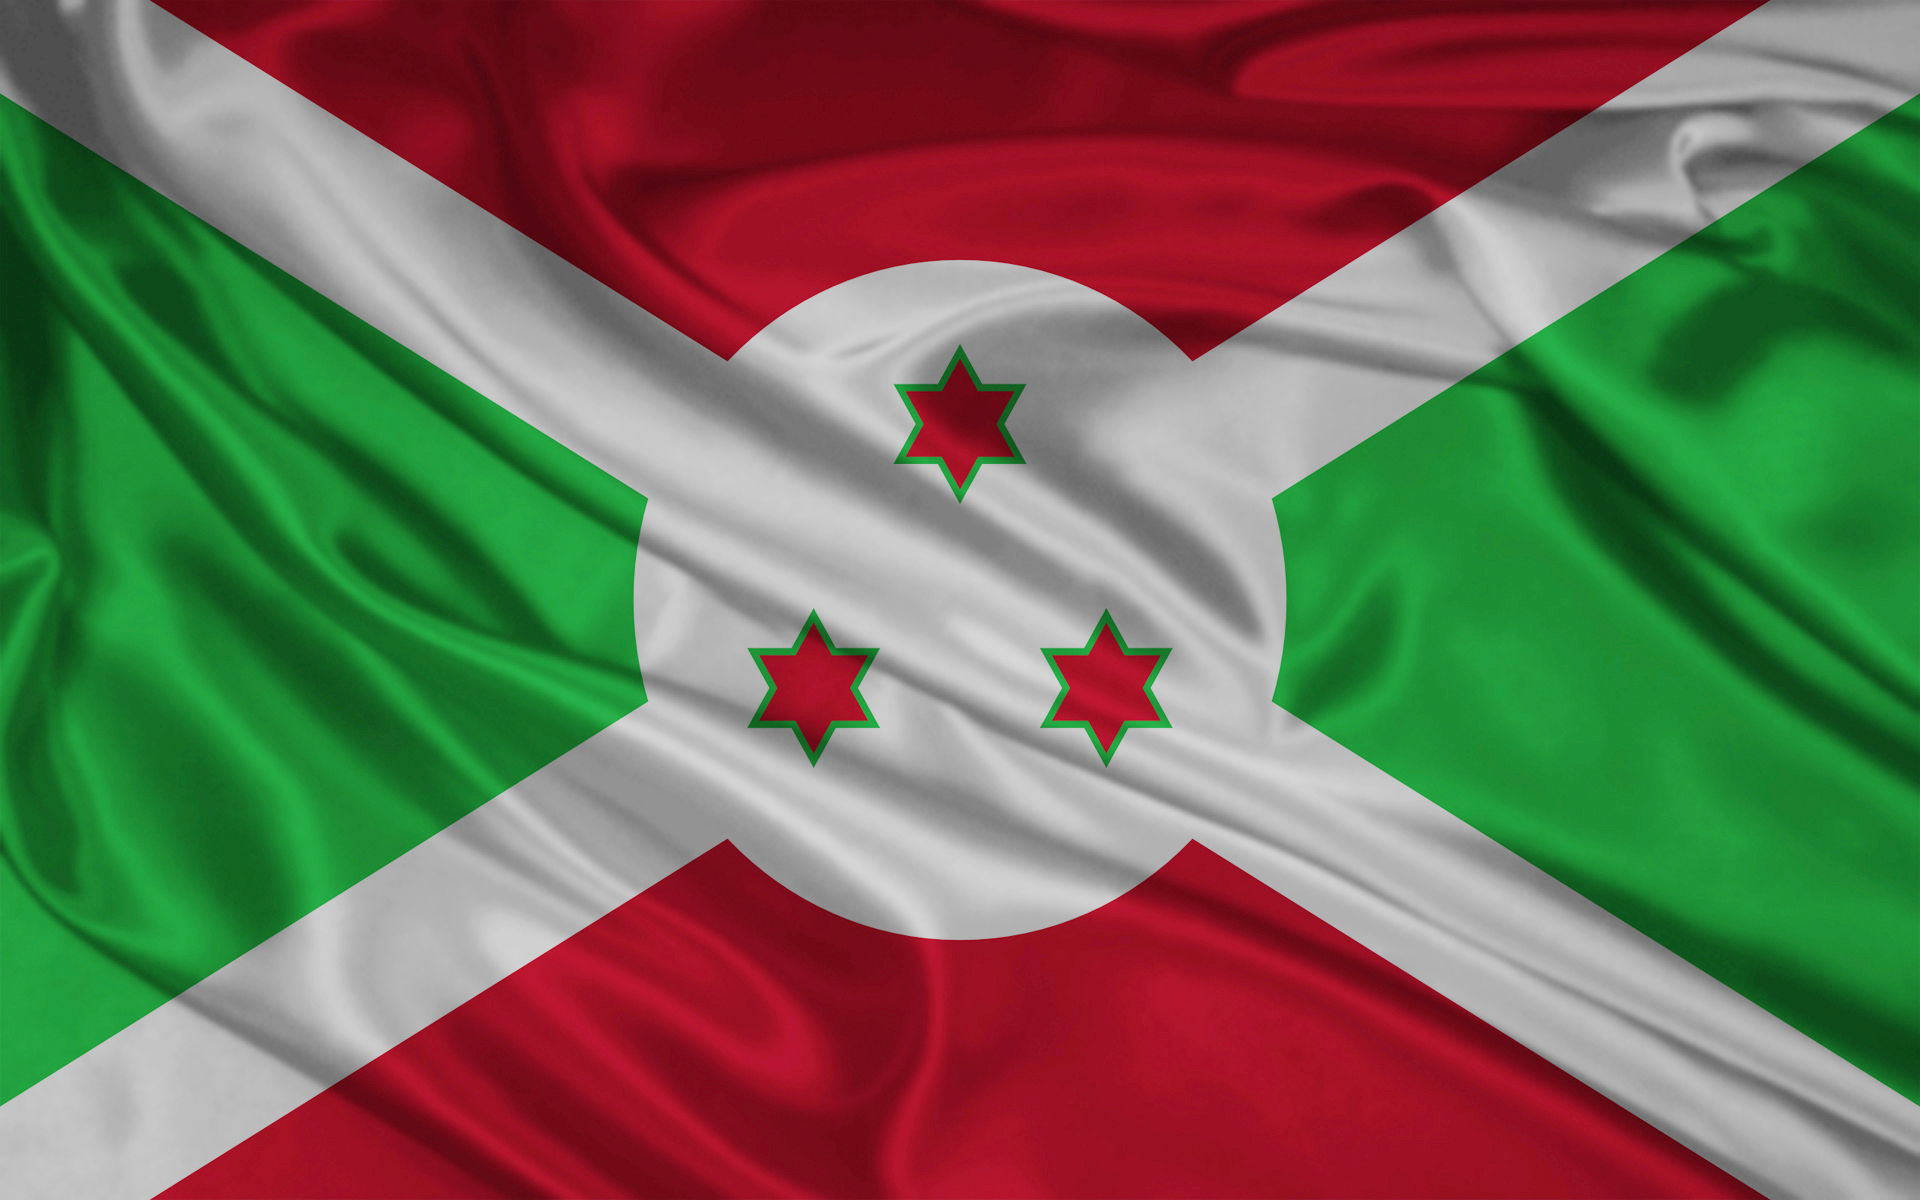 Burundi flag and wallpaper